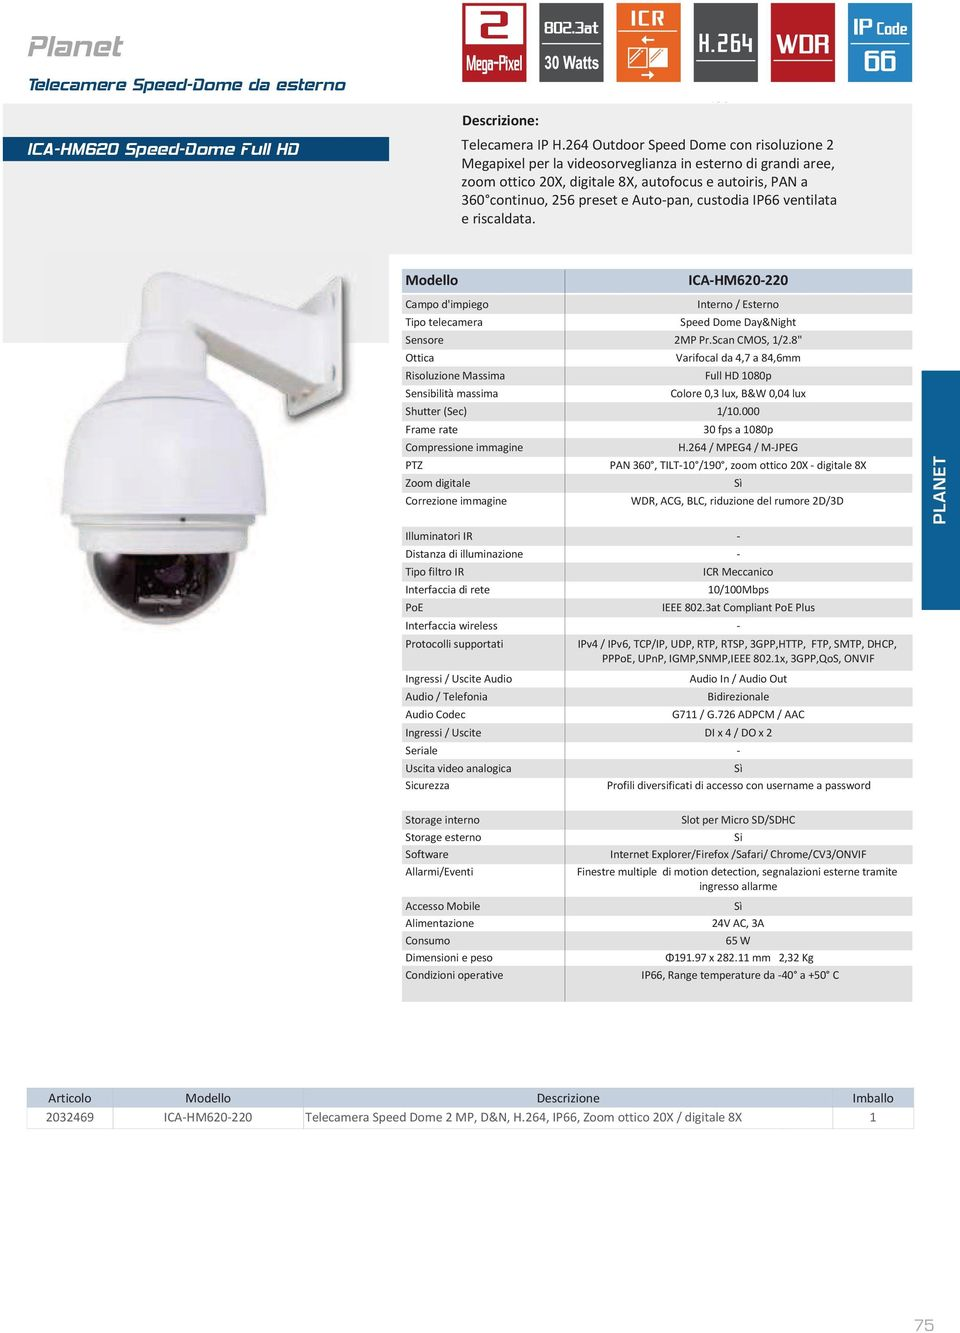 custodia IP66 ventilata e riscaldata. ICA-HM620-220 Interno / Esterno Speed Dome Day&Night Sensore 2MP Pr.Scan CMOS, 1/2.